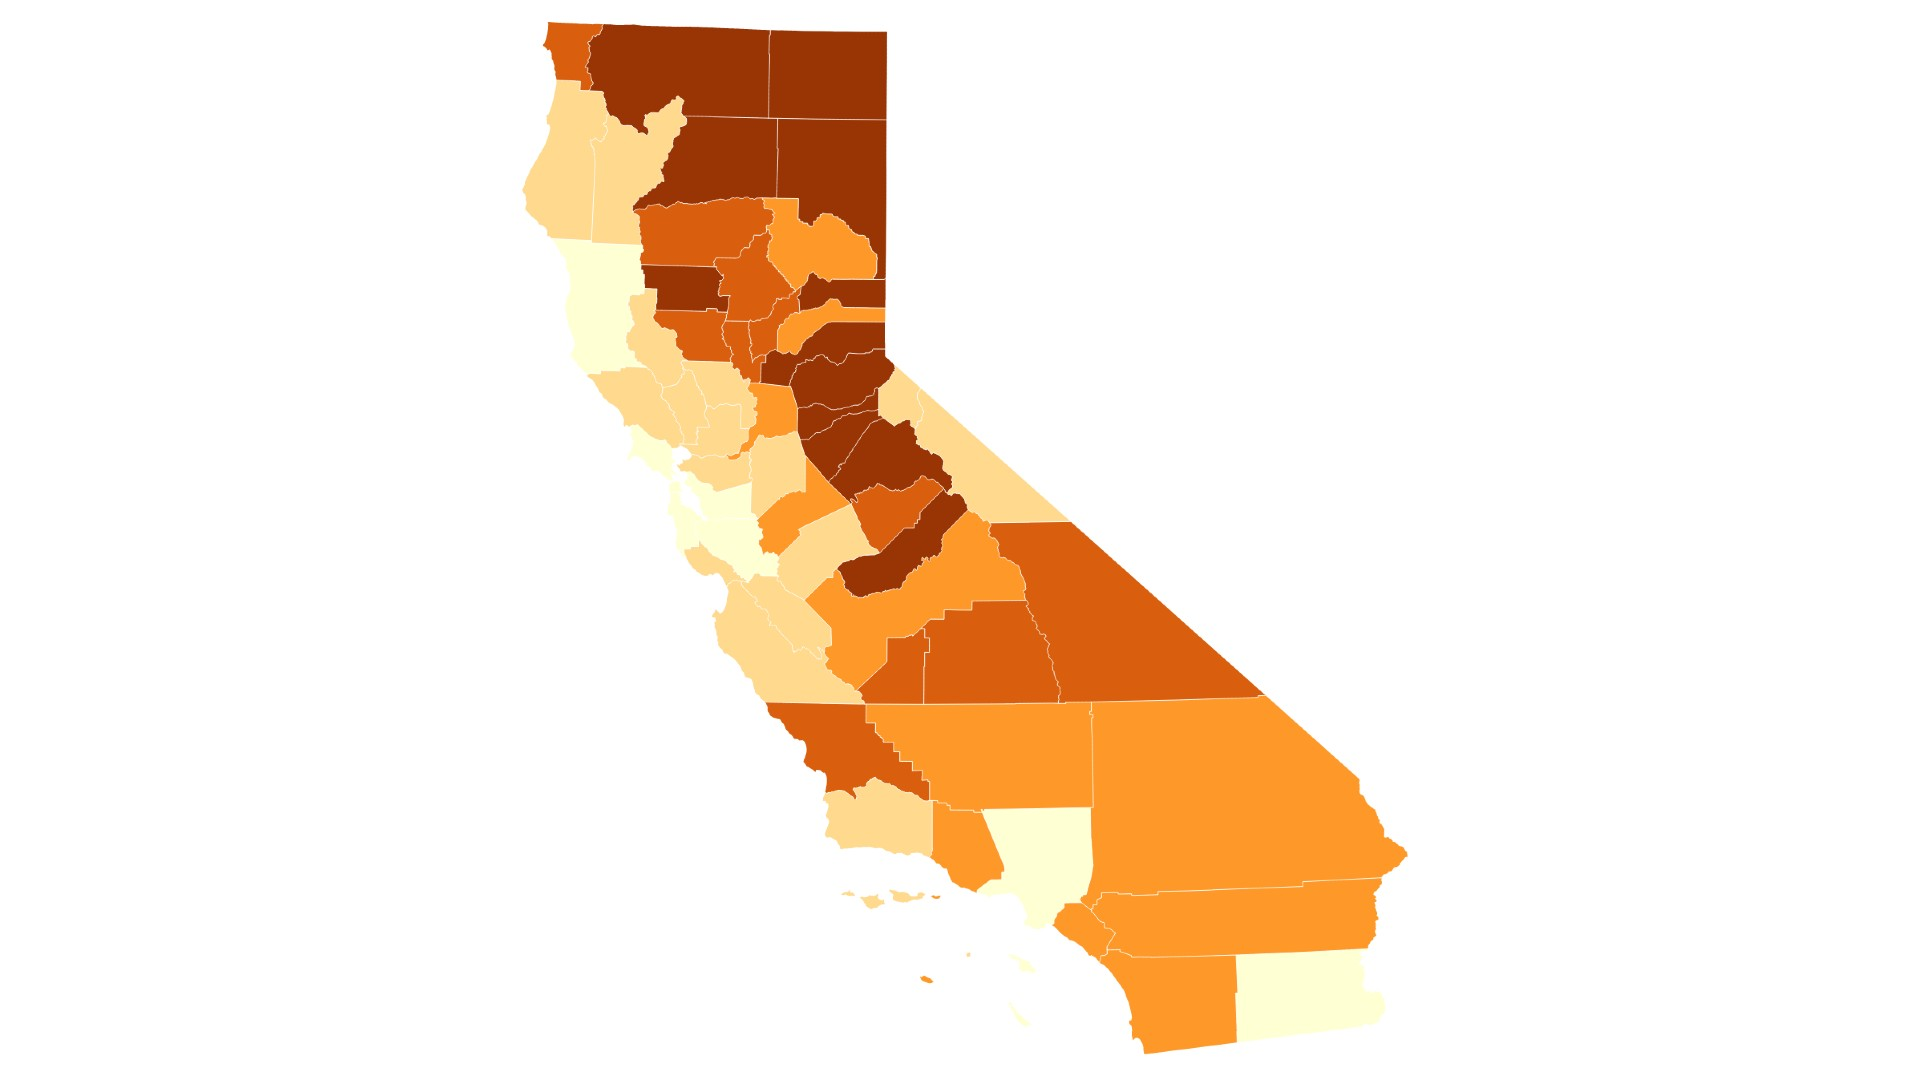 The map shows the percentage of registered voters who signed the recall for Gov. Gavin Newsom in each California county. Darker areas had the highest participation among voters in the recall petition.